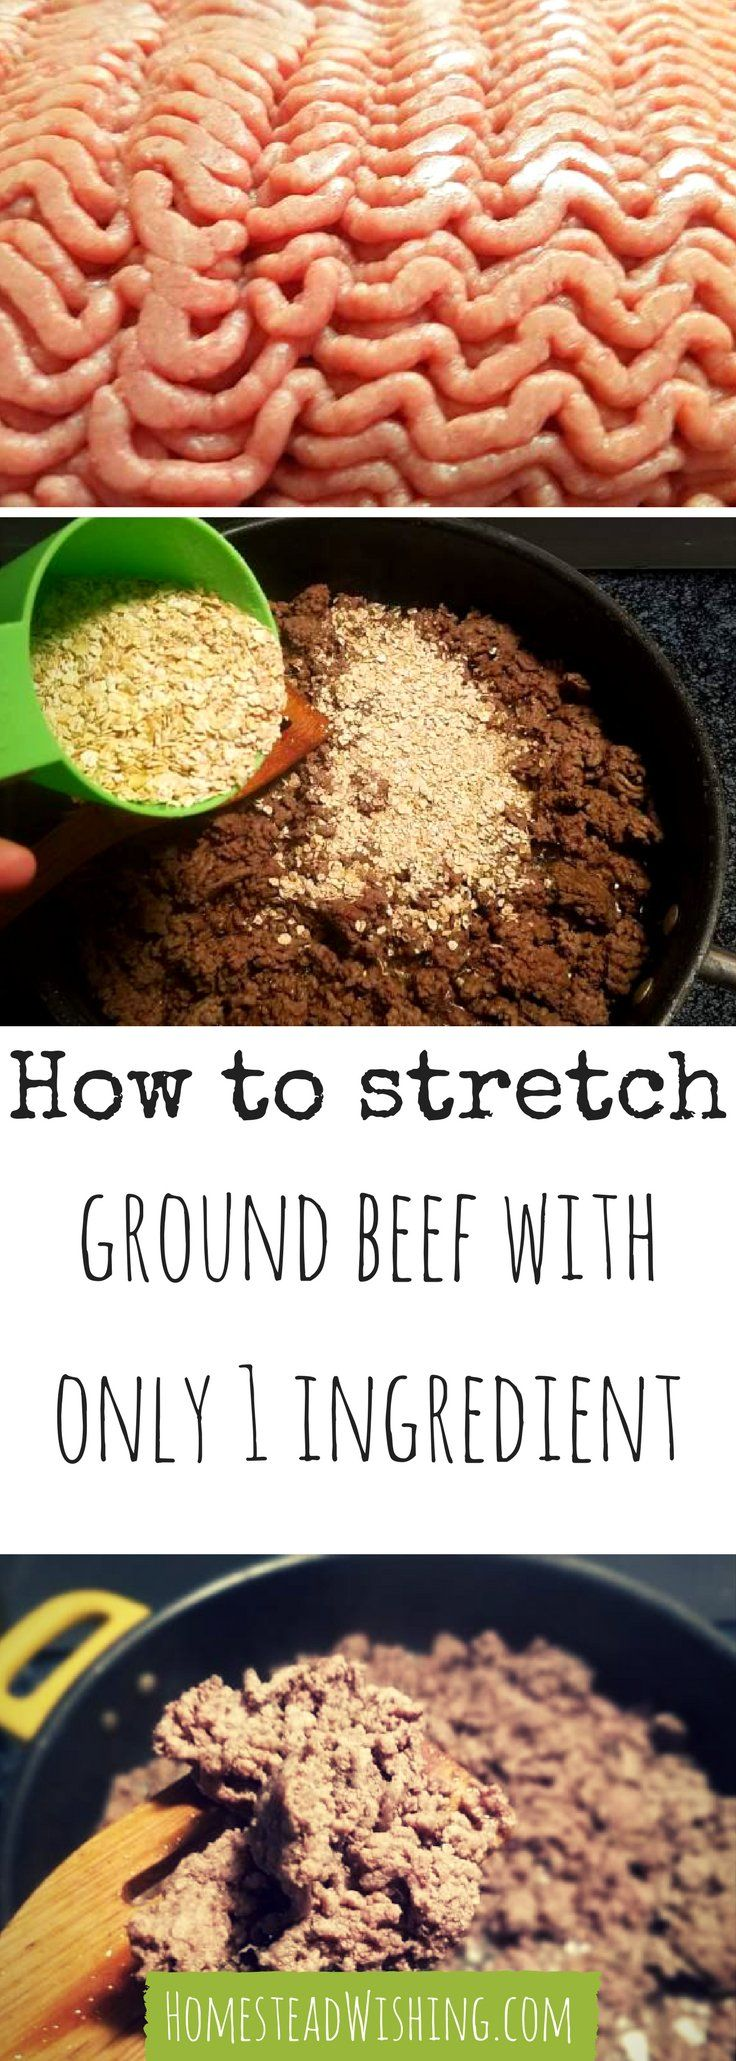 Stretching Ground Beef